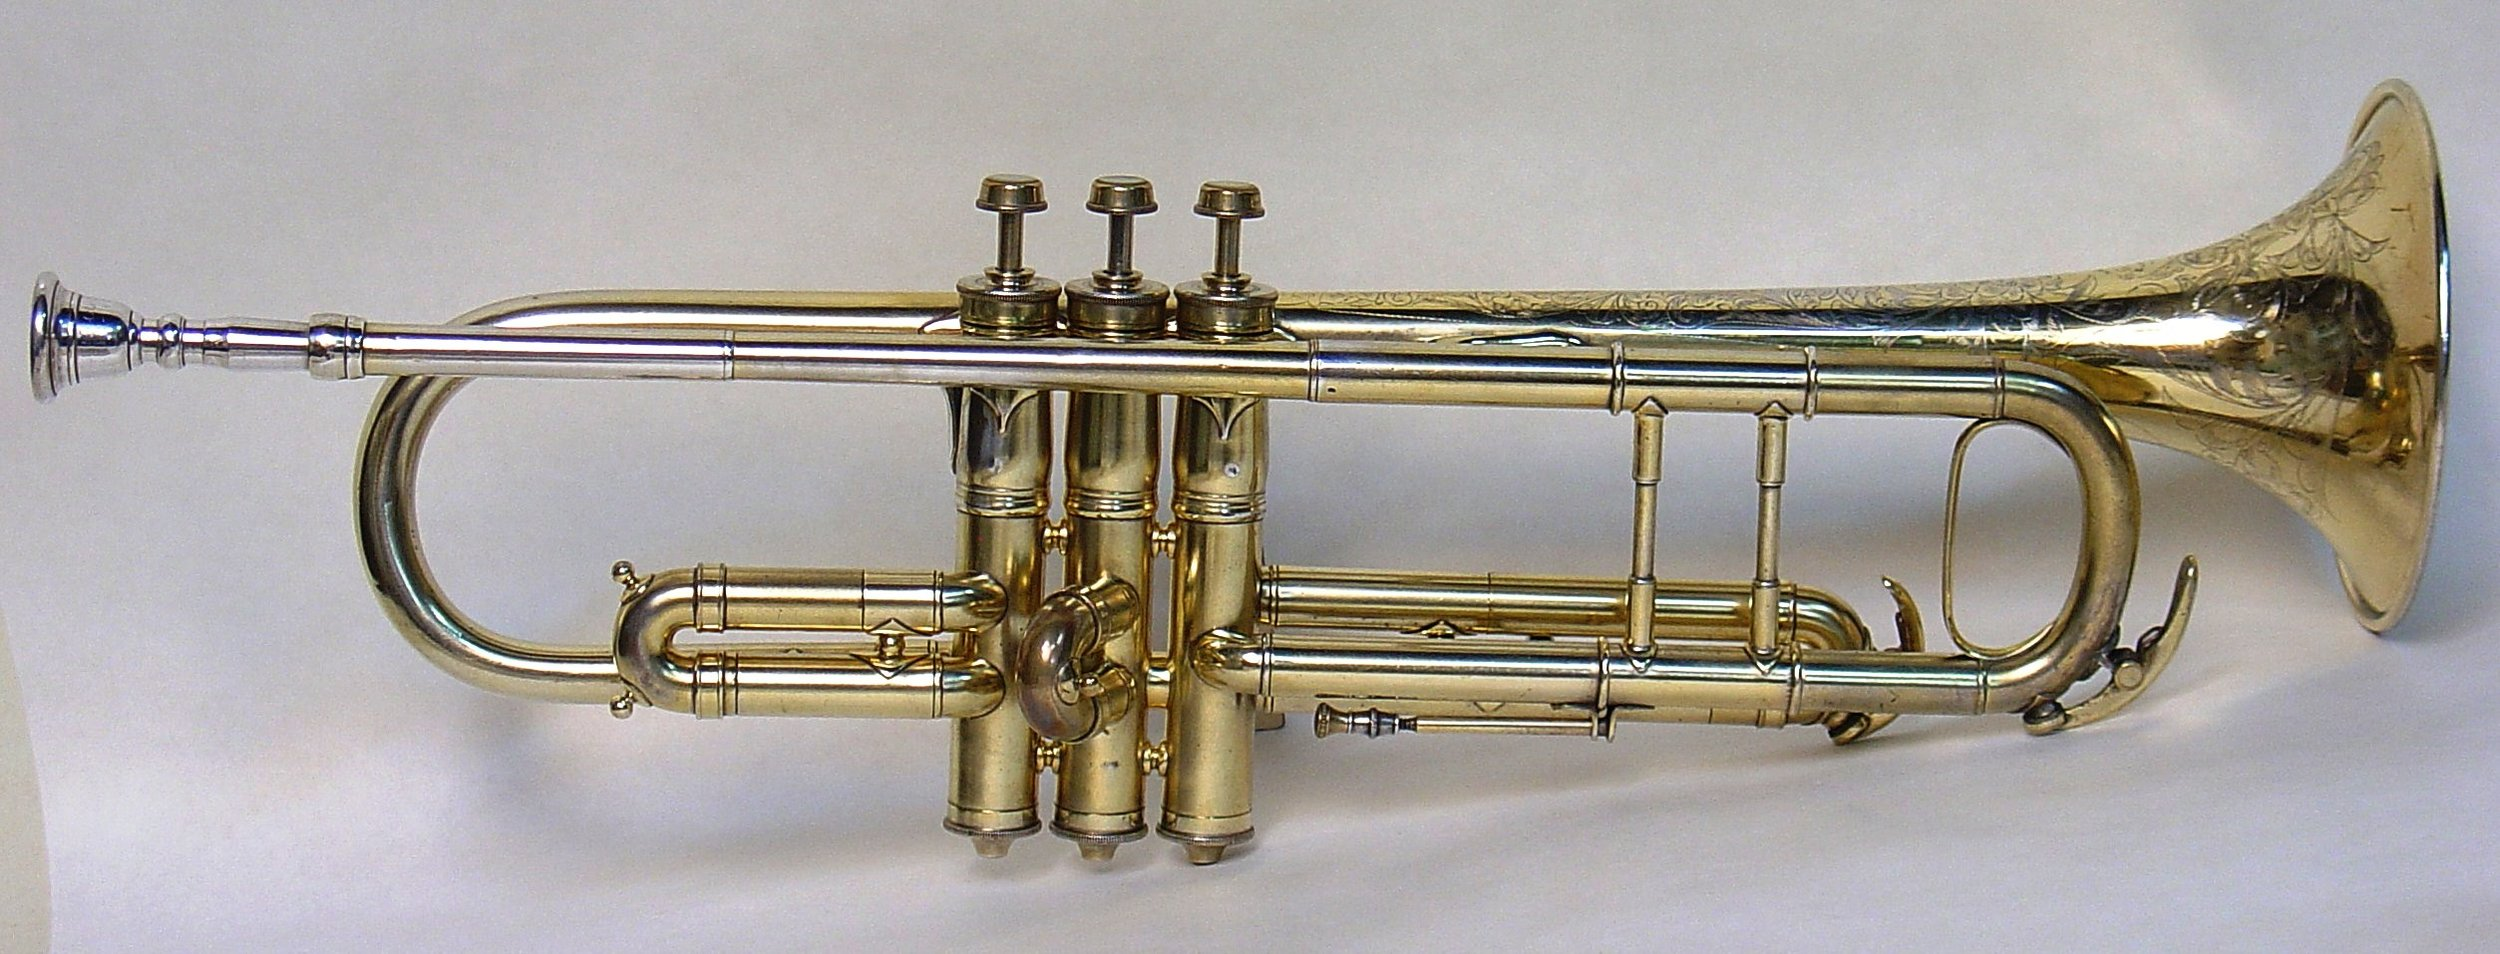 Early Conn Trumpet in Bb